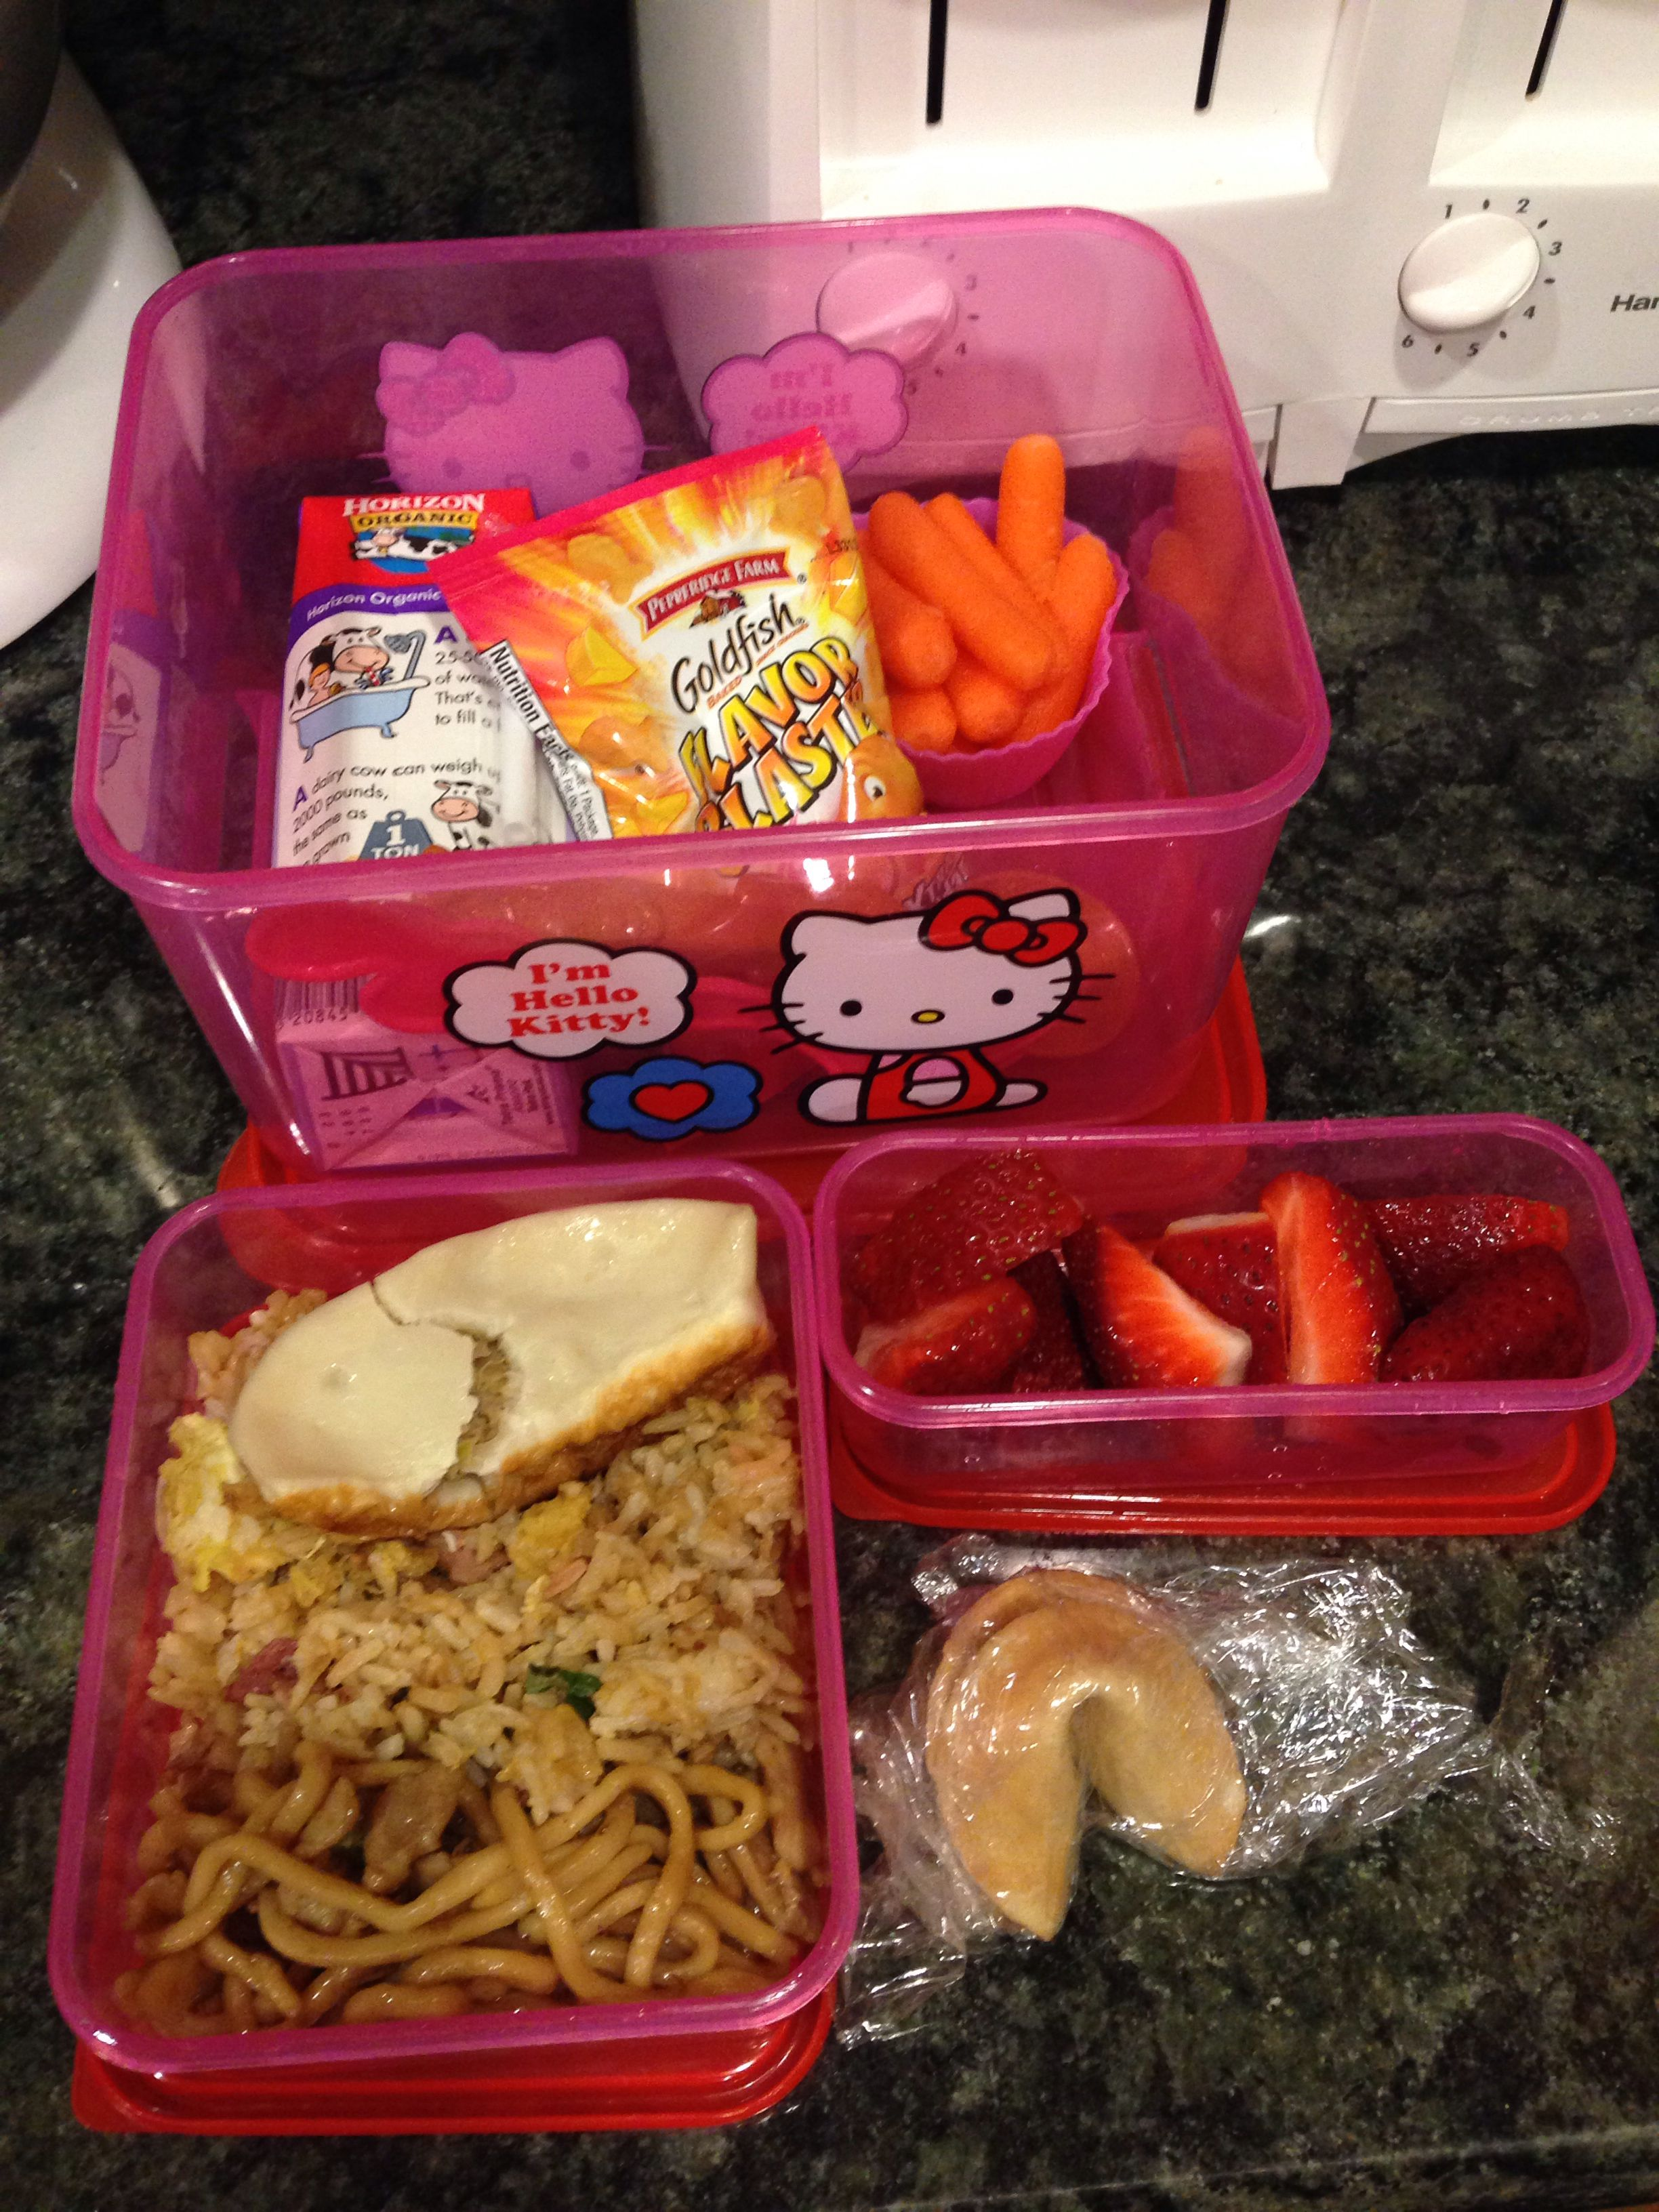 Lunch box ideas: Leftover Chinese food, chicken chow mein